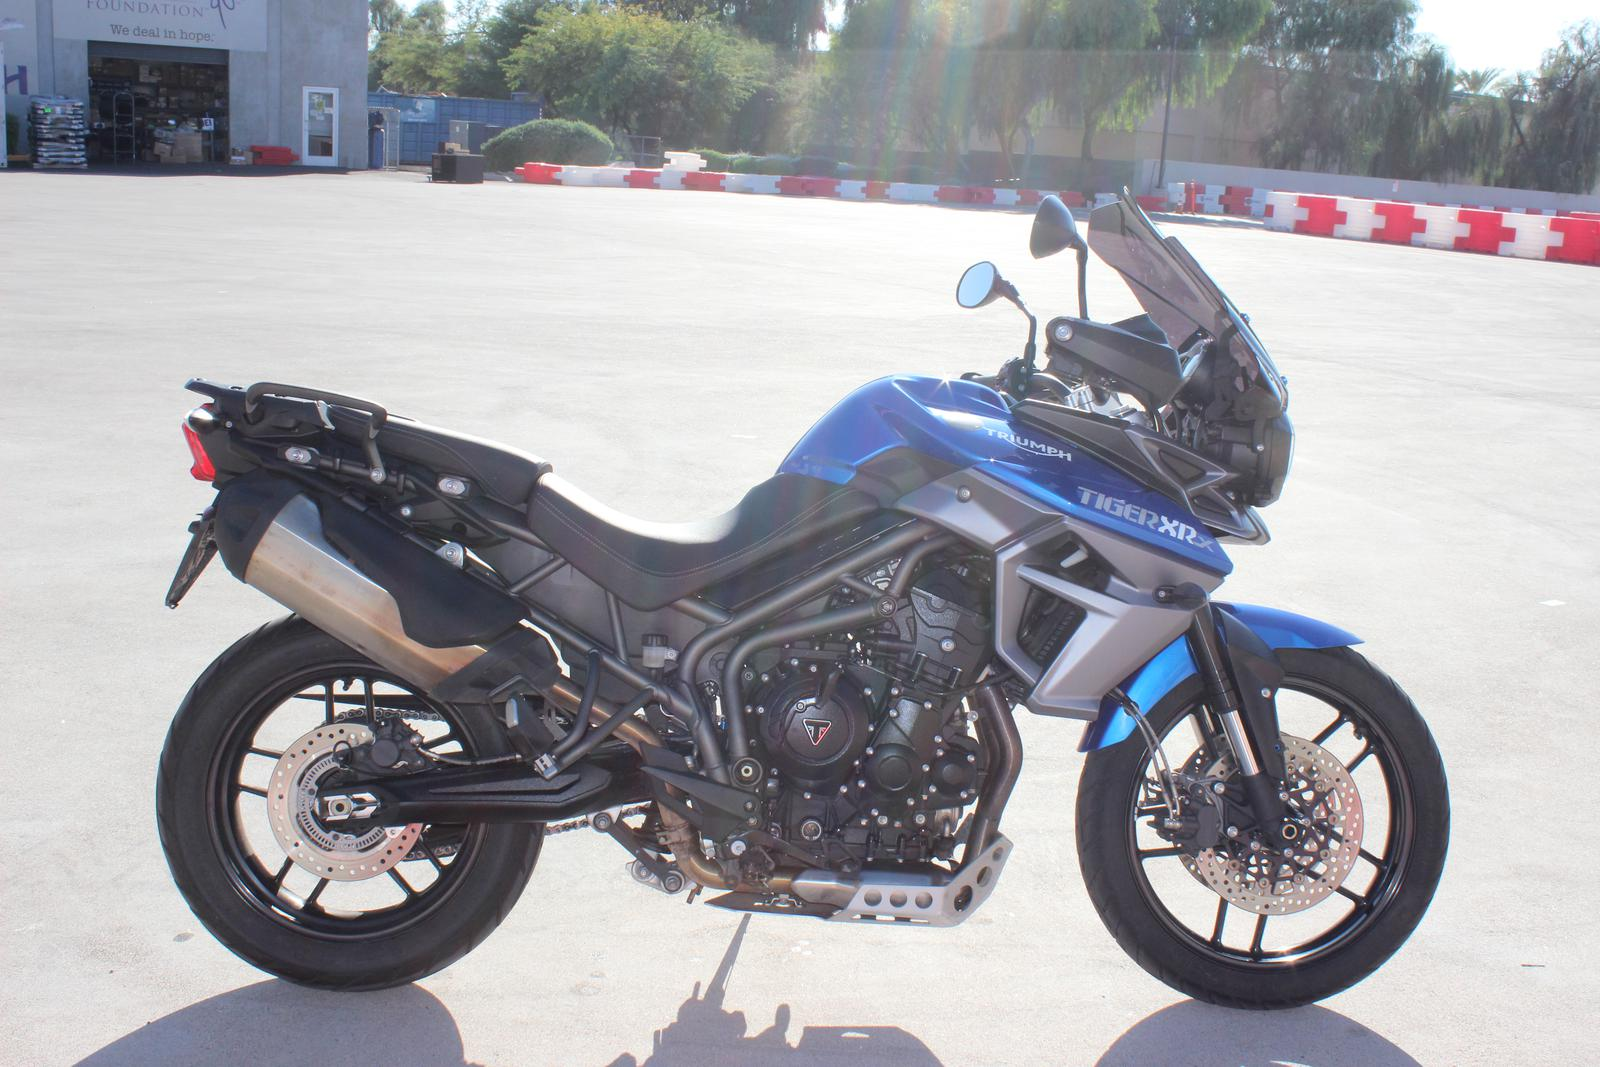 2016 Triumph Tiger 800 Xrx Low For Sale In Scottsdale Az Go Az